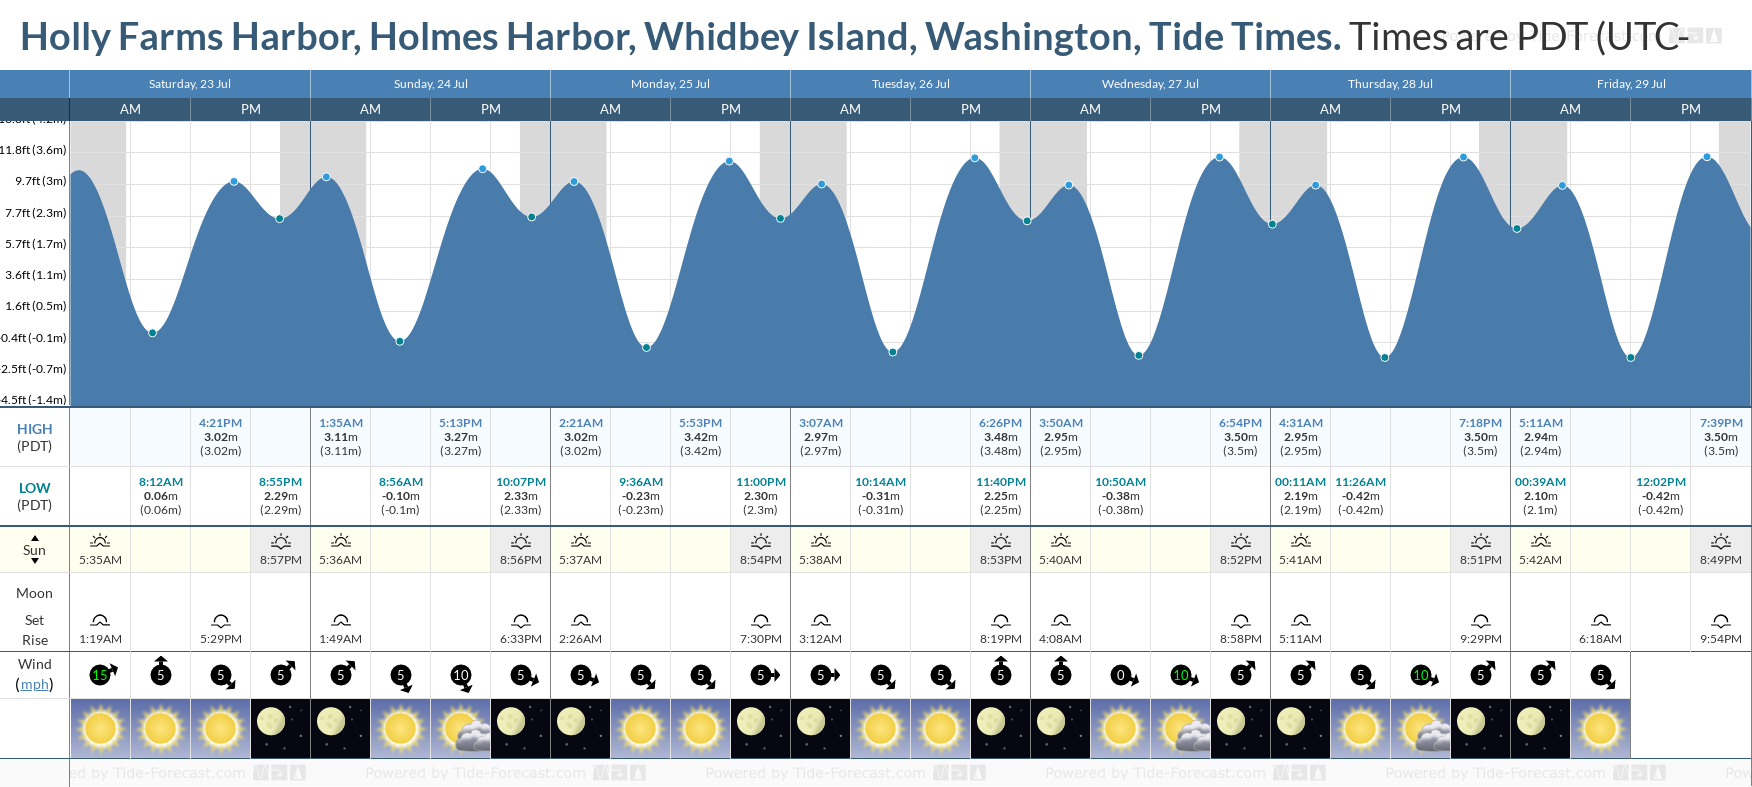 Holly Farms Harbor, Holmes Harbor, Whidbey Island, Washington Tide Chart including high and low tide tide times for the next 7 days